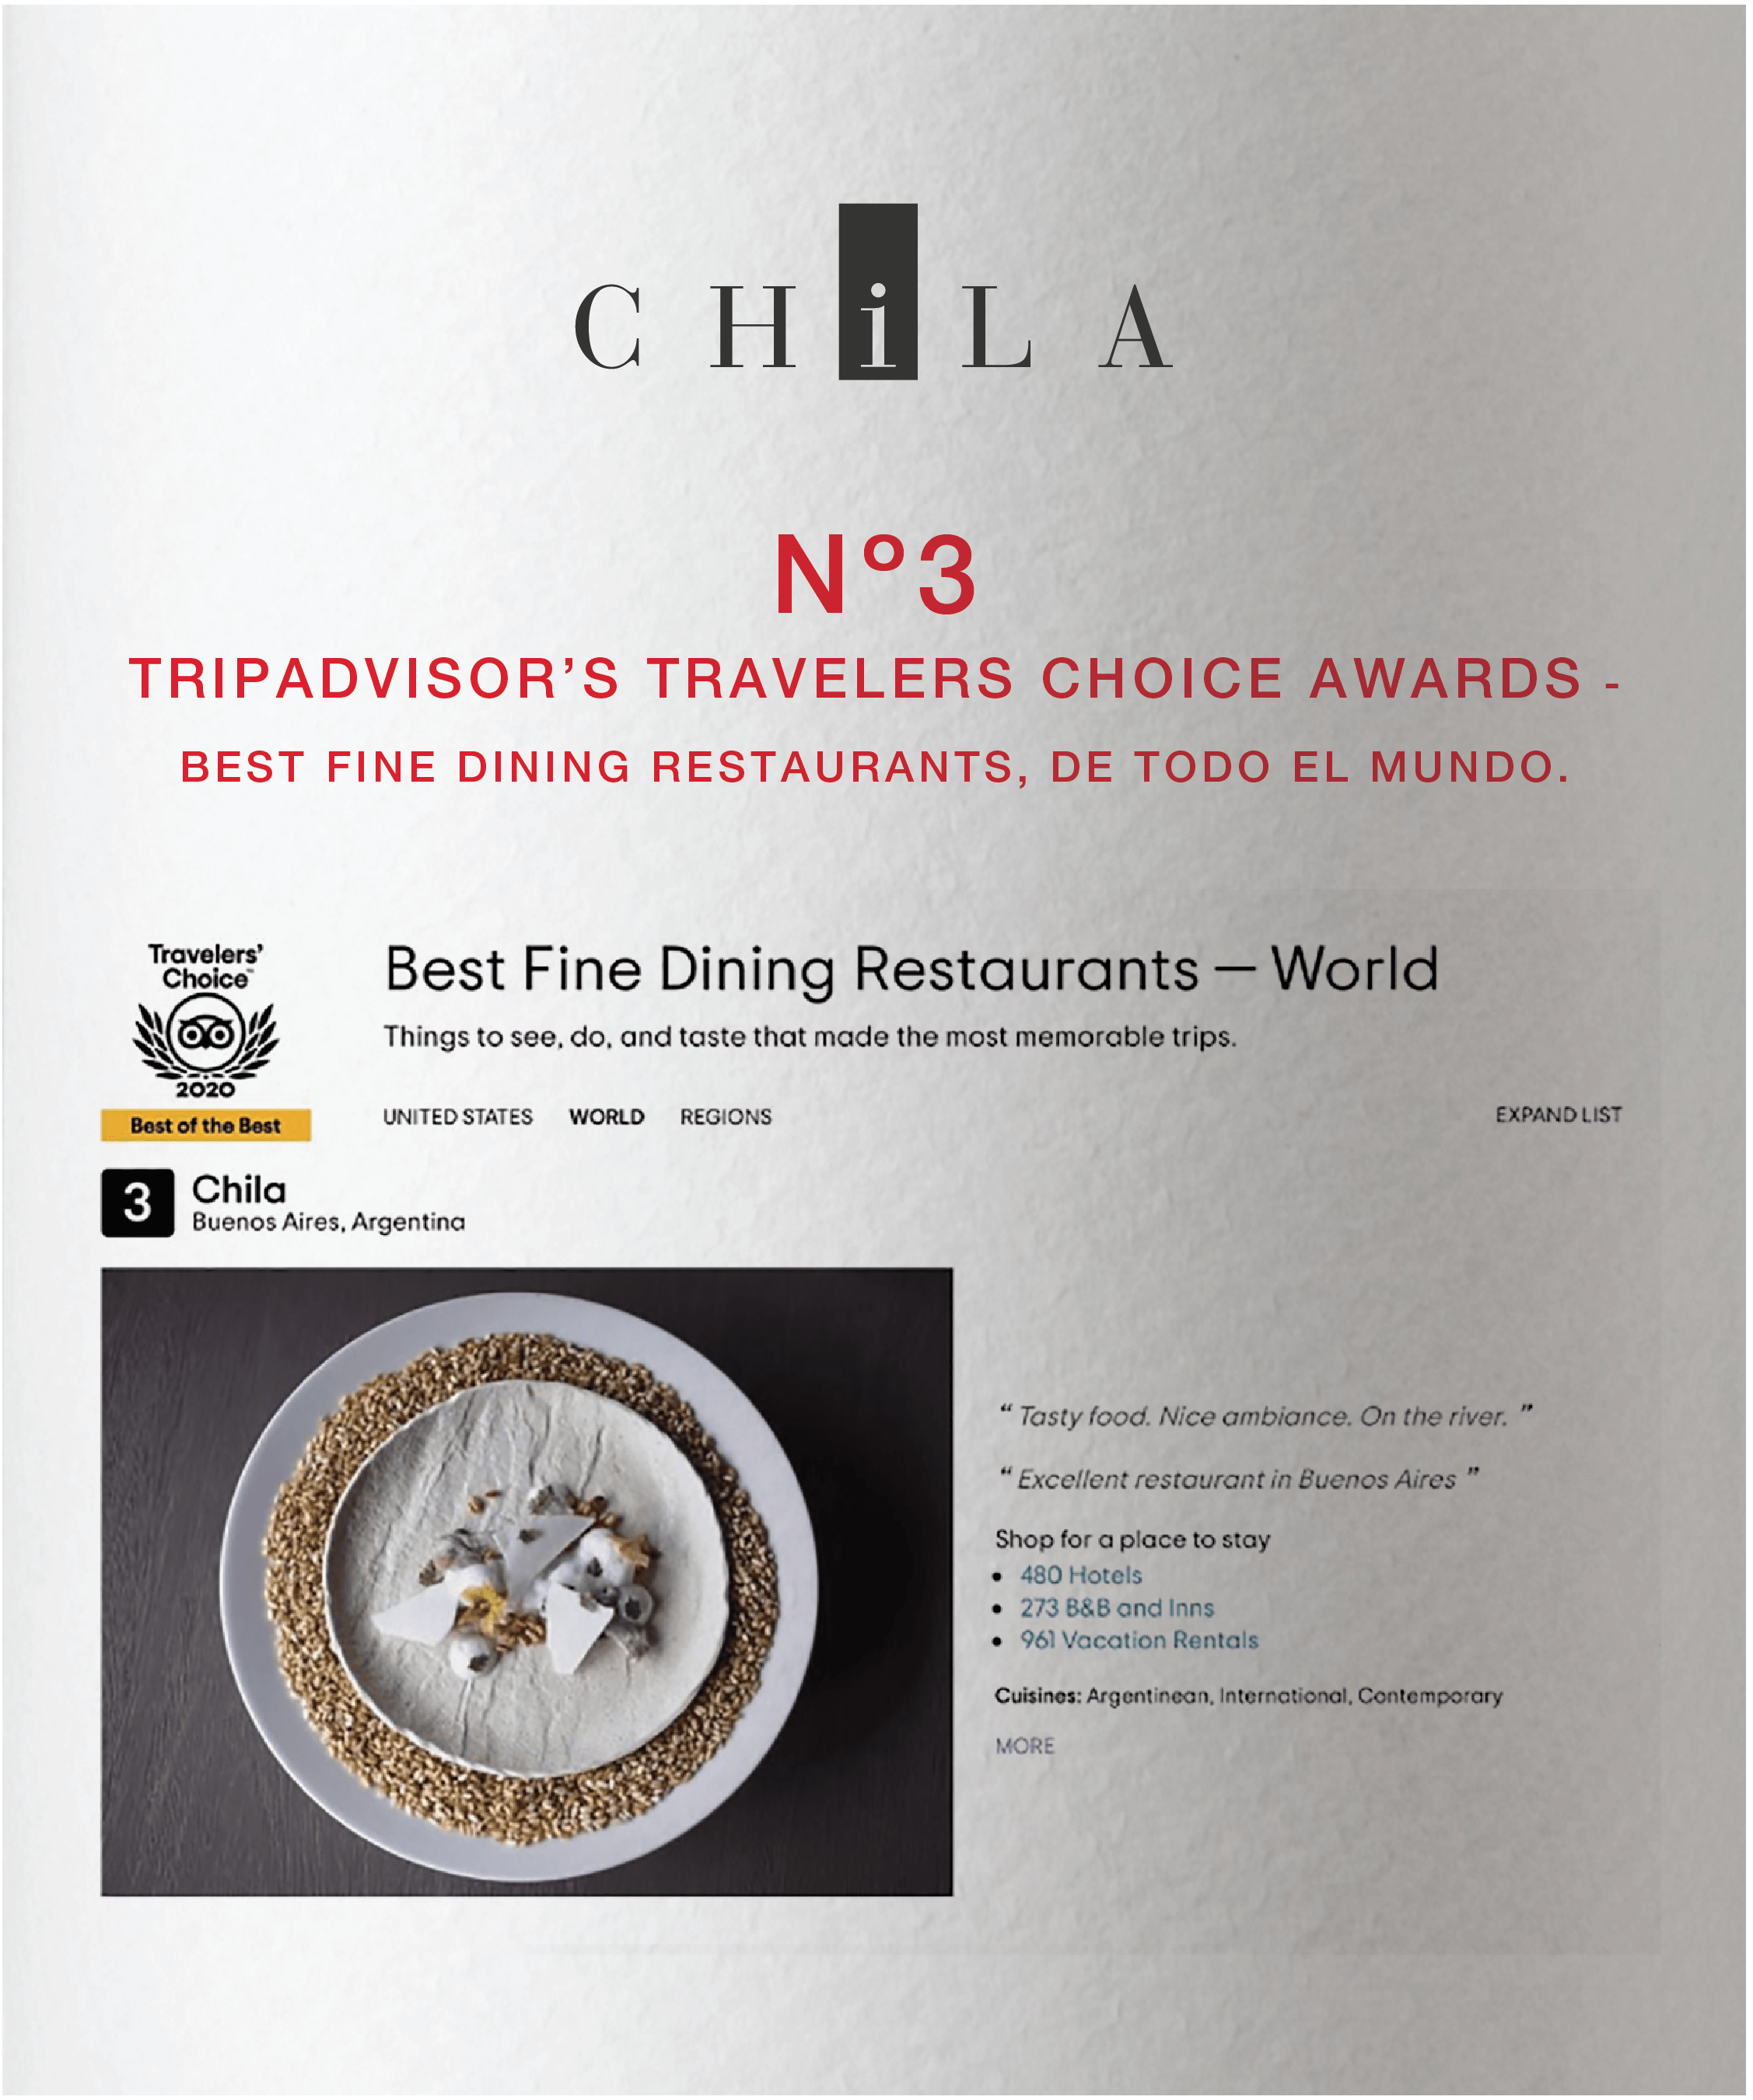 https://www.chilarestaurant.com/chila-puesto-no3-en-tripadvisors-travelers-choice-awards/esp-trip-pop-up/